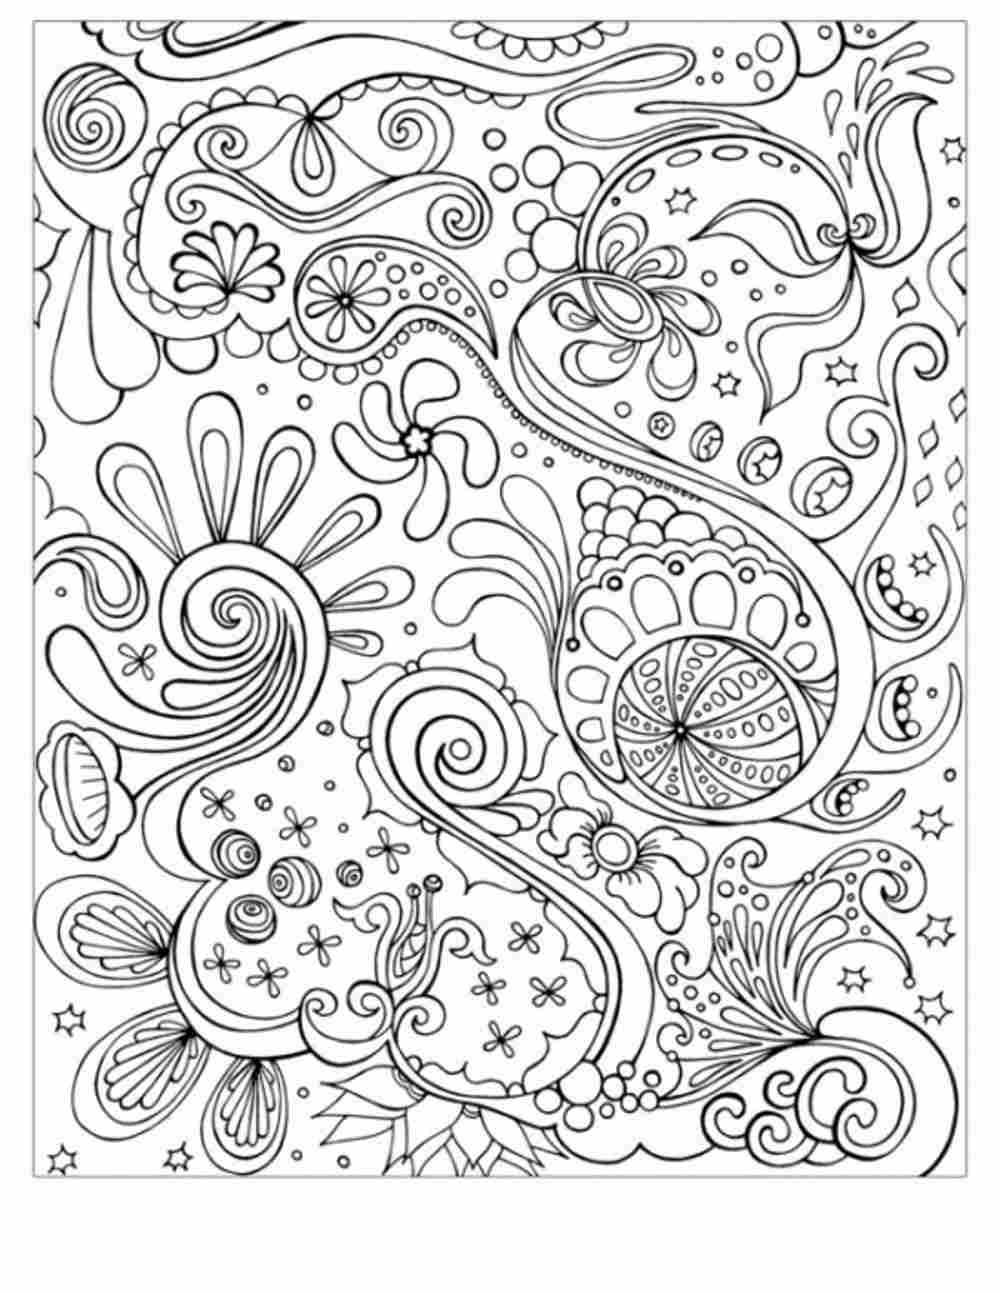 Abstract coloring pages for adults colouring for grownups